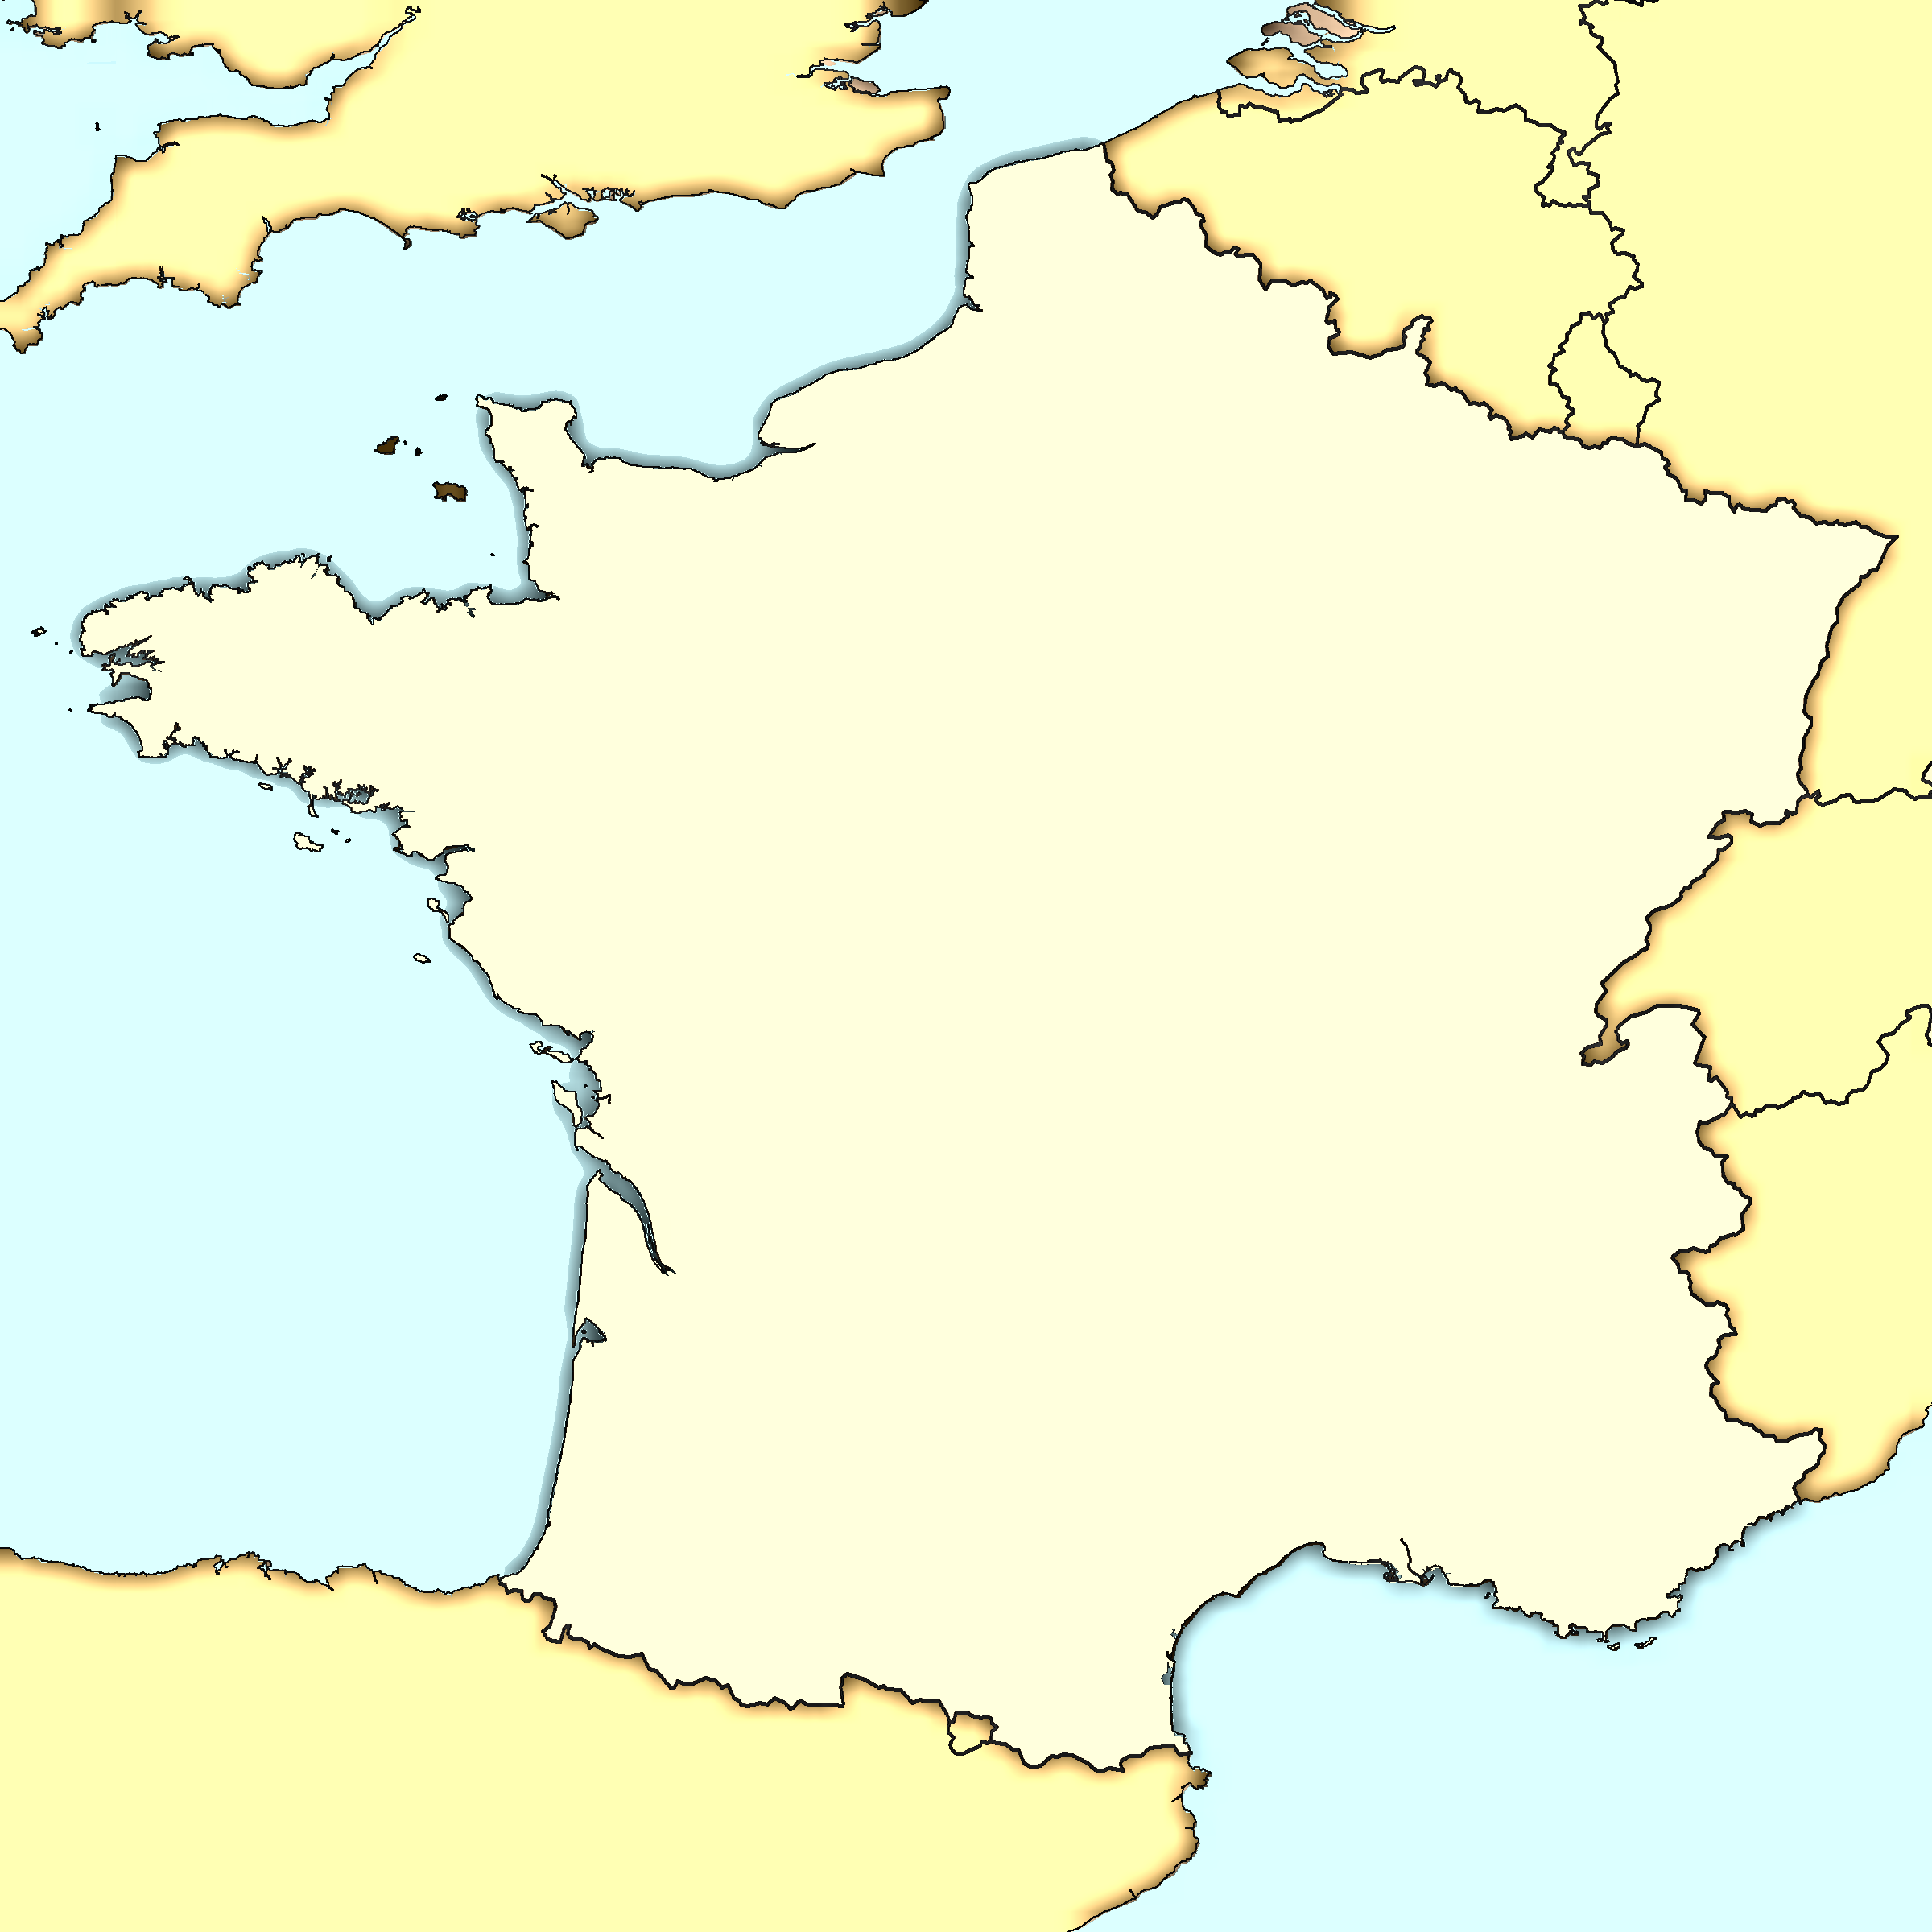 FileFrance Map Modernpng Wikimedia Commons - France map images blank